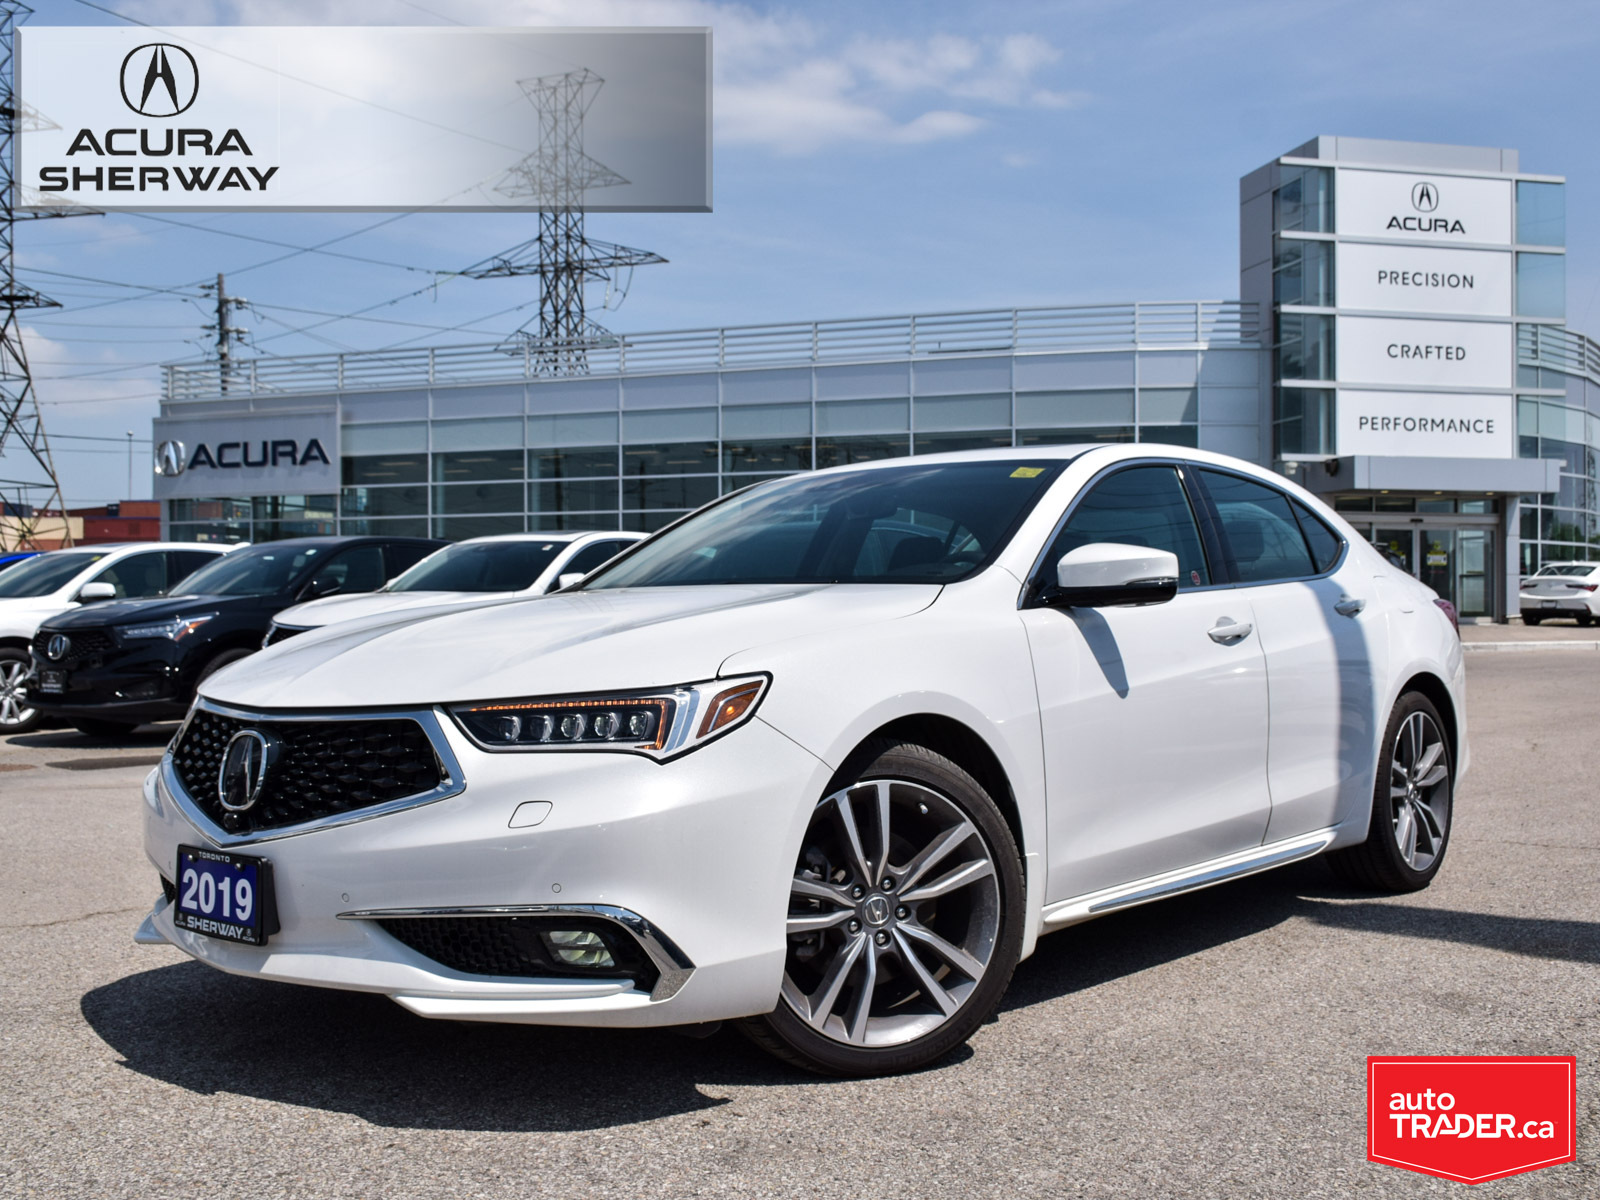 Certified Pre-Owned 2019 Acura TLX 3.5L SH-AWD w/Elite Pkg